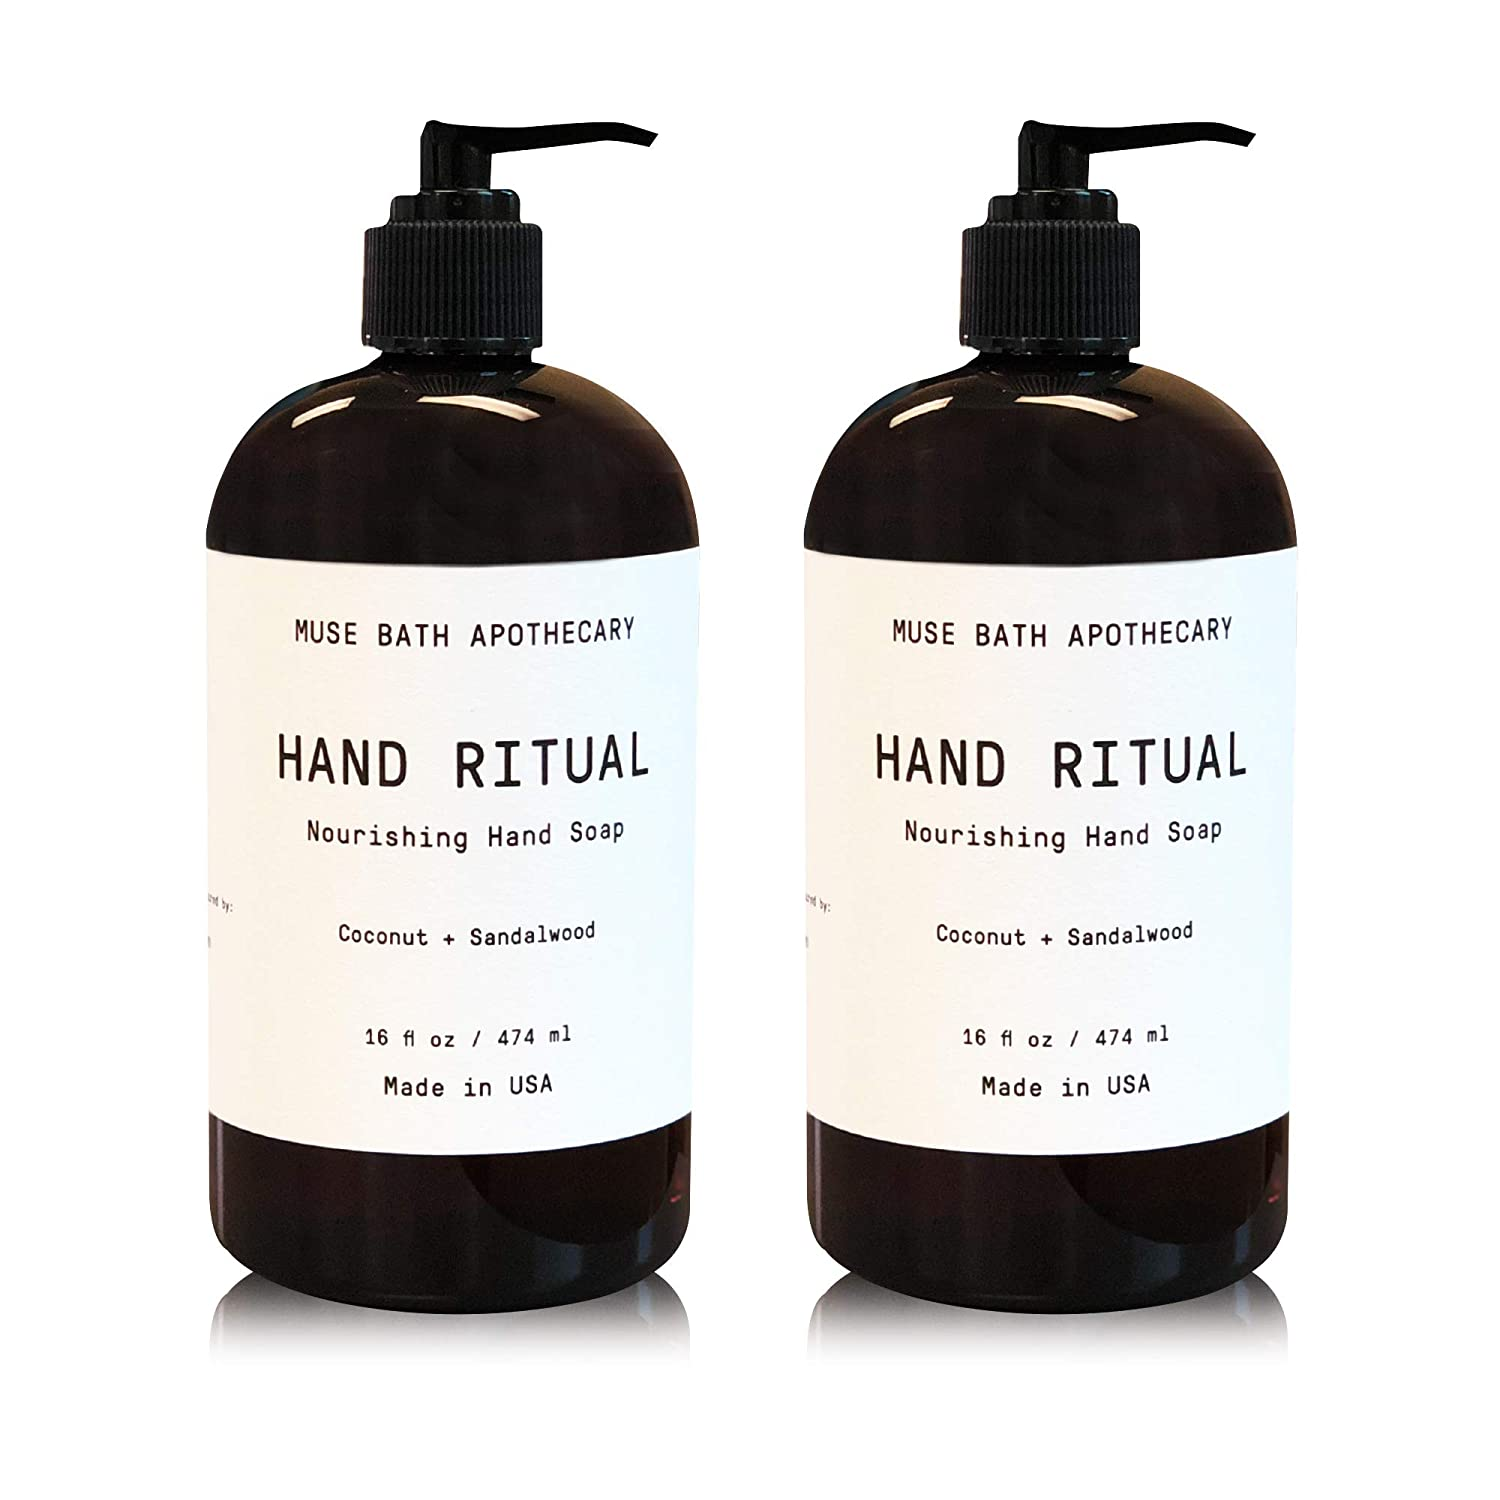 Muse Bath Apothecary Hand Ritual - Aromatic and Nourishing Hand Soap, 16 oz, Infused with Natural Essential Oils - Coconut + Sandalwood, 2 Pack